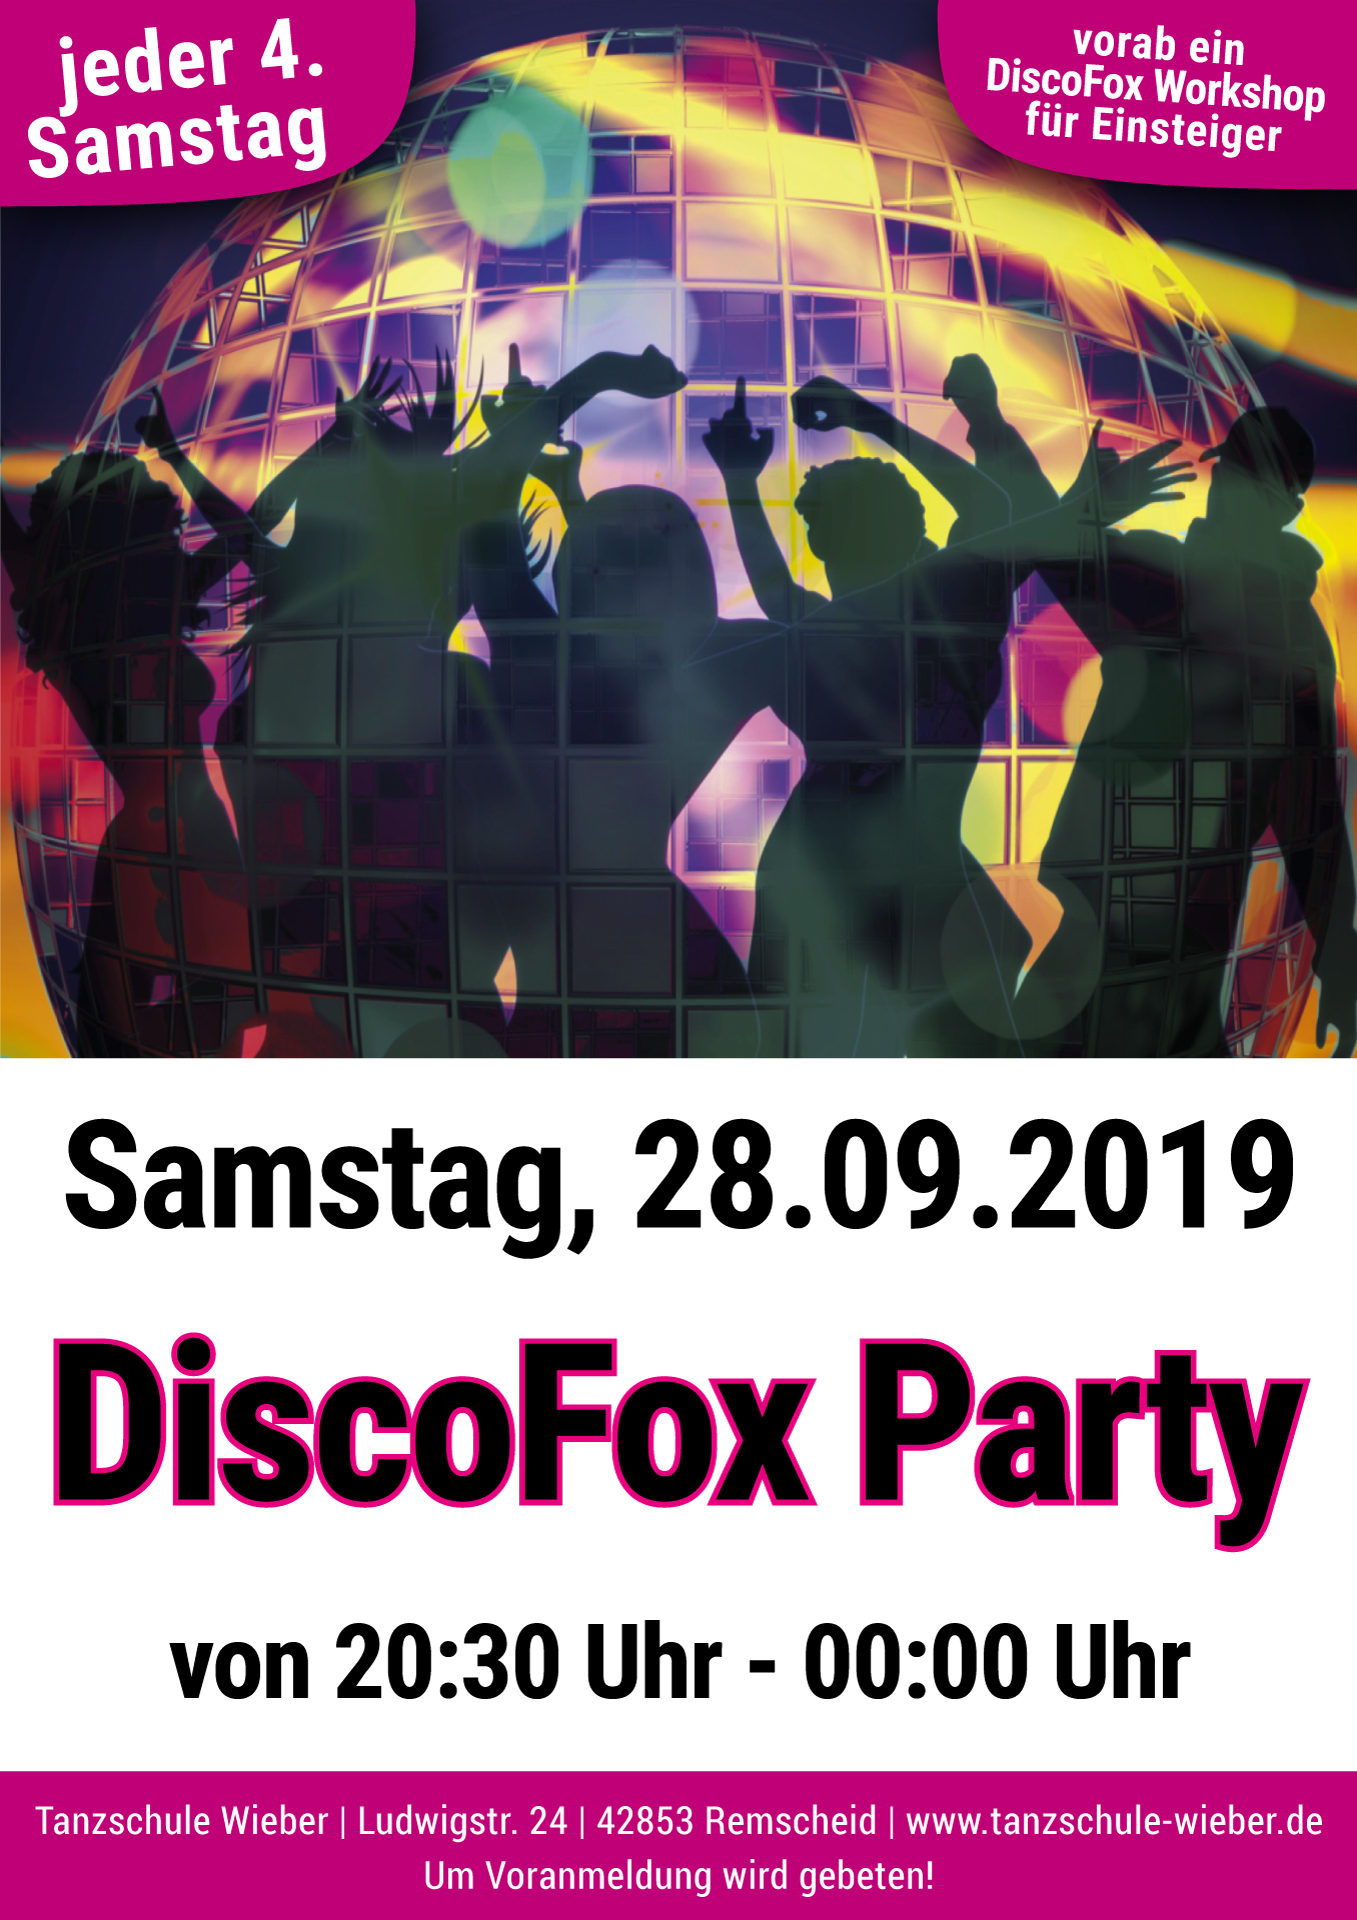 dfparty-flyer_2019_09_28.jpg